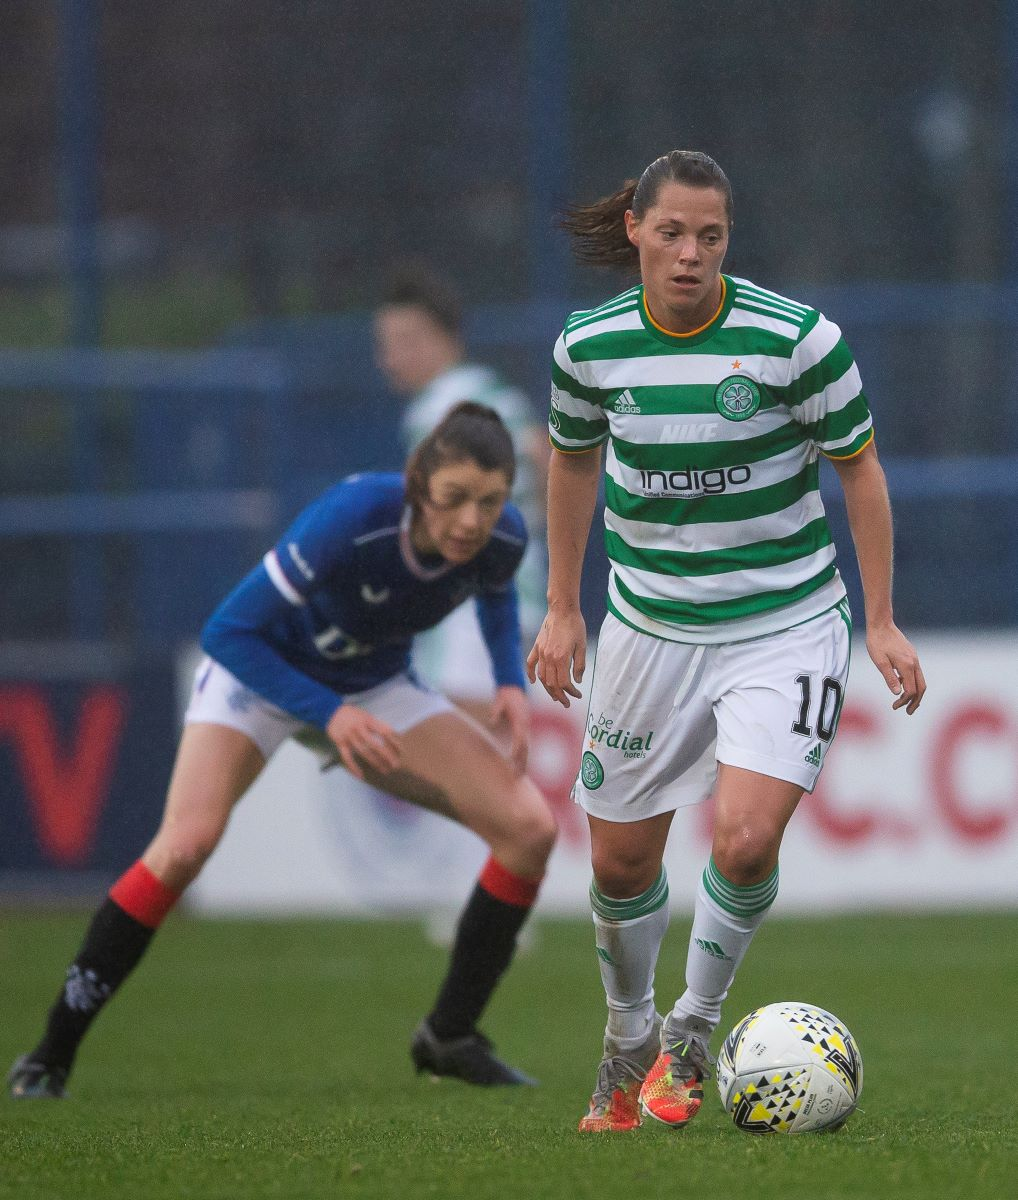 SBSSWPL Player of the Month, Lisa Robertson